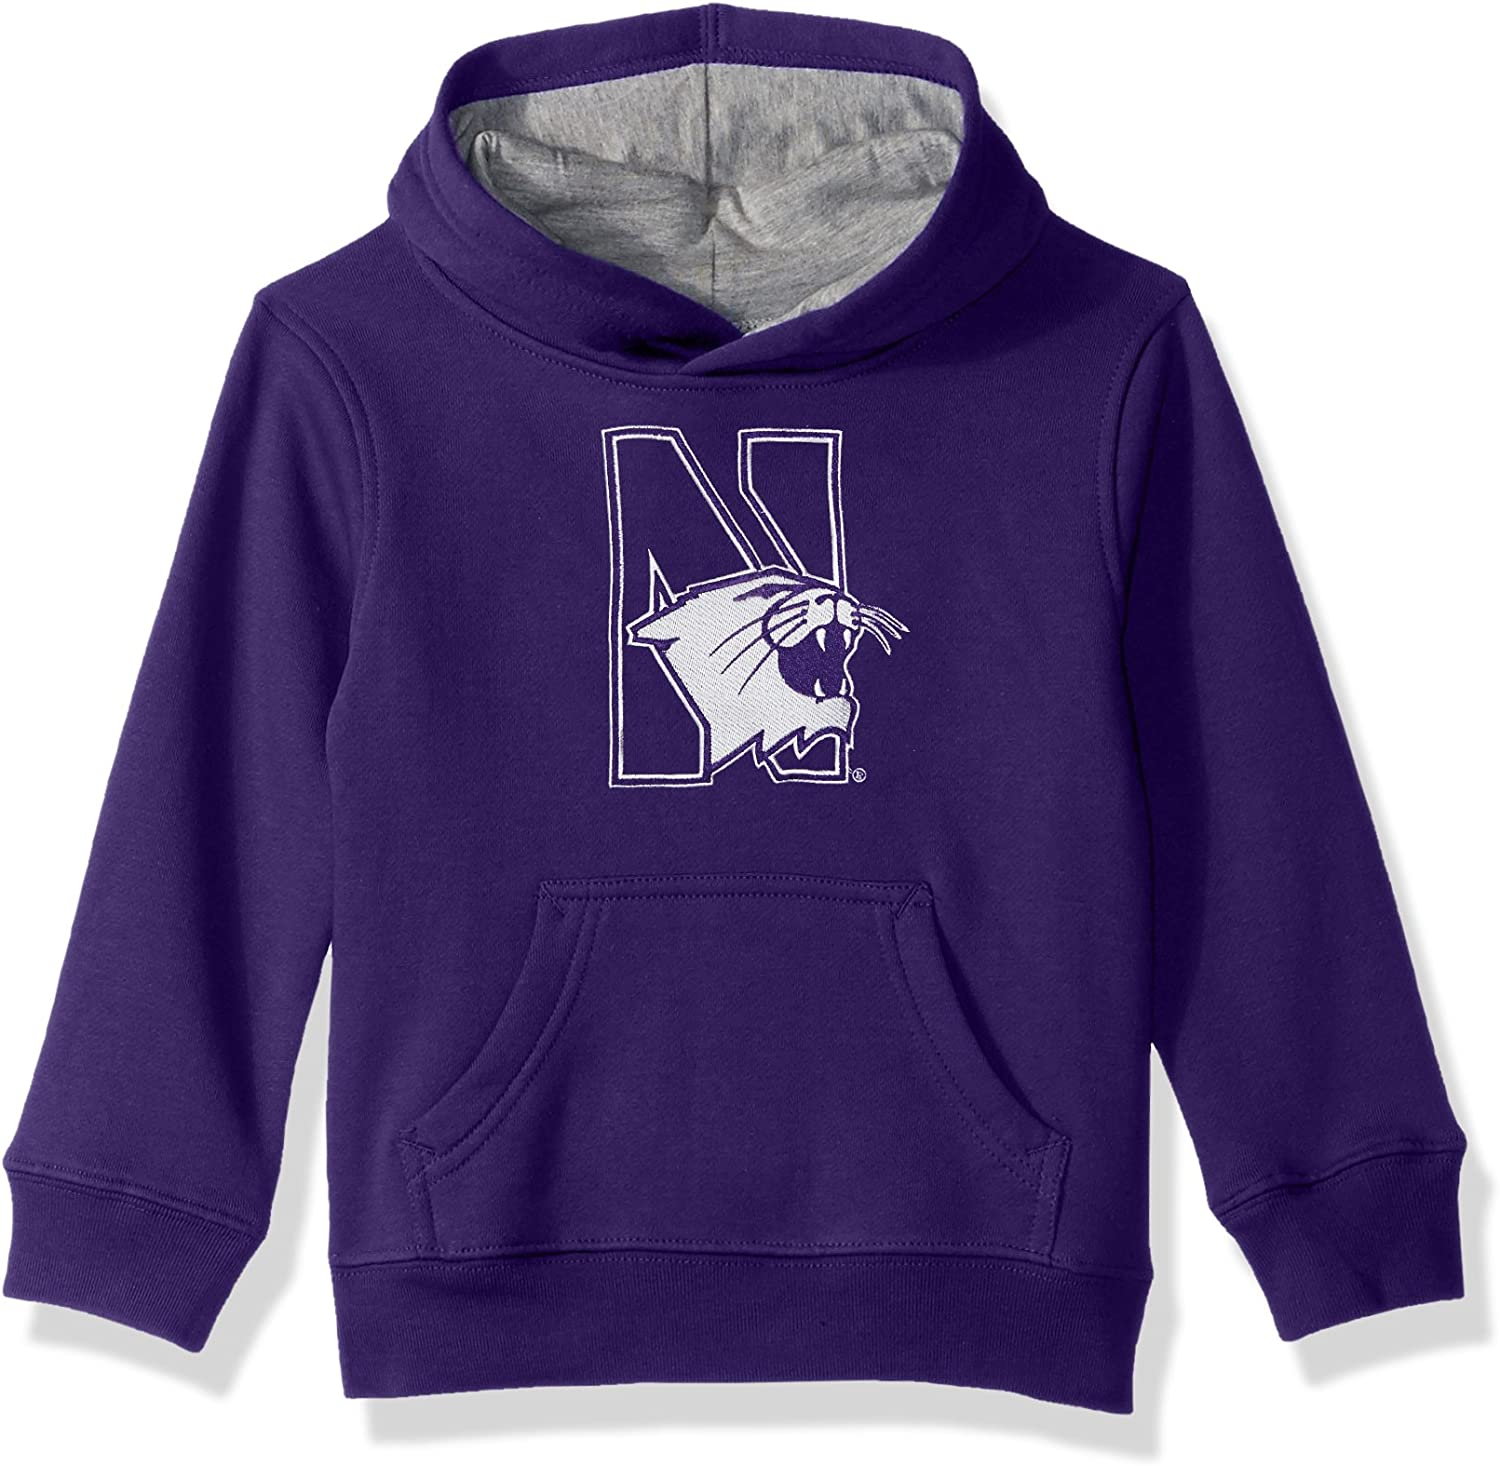 NCAA by Outerstuff NCAA Kids /& Youth Boys Icon Pullover Hoodie